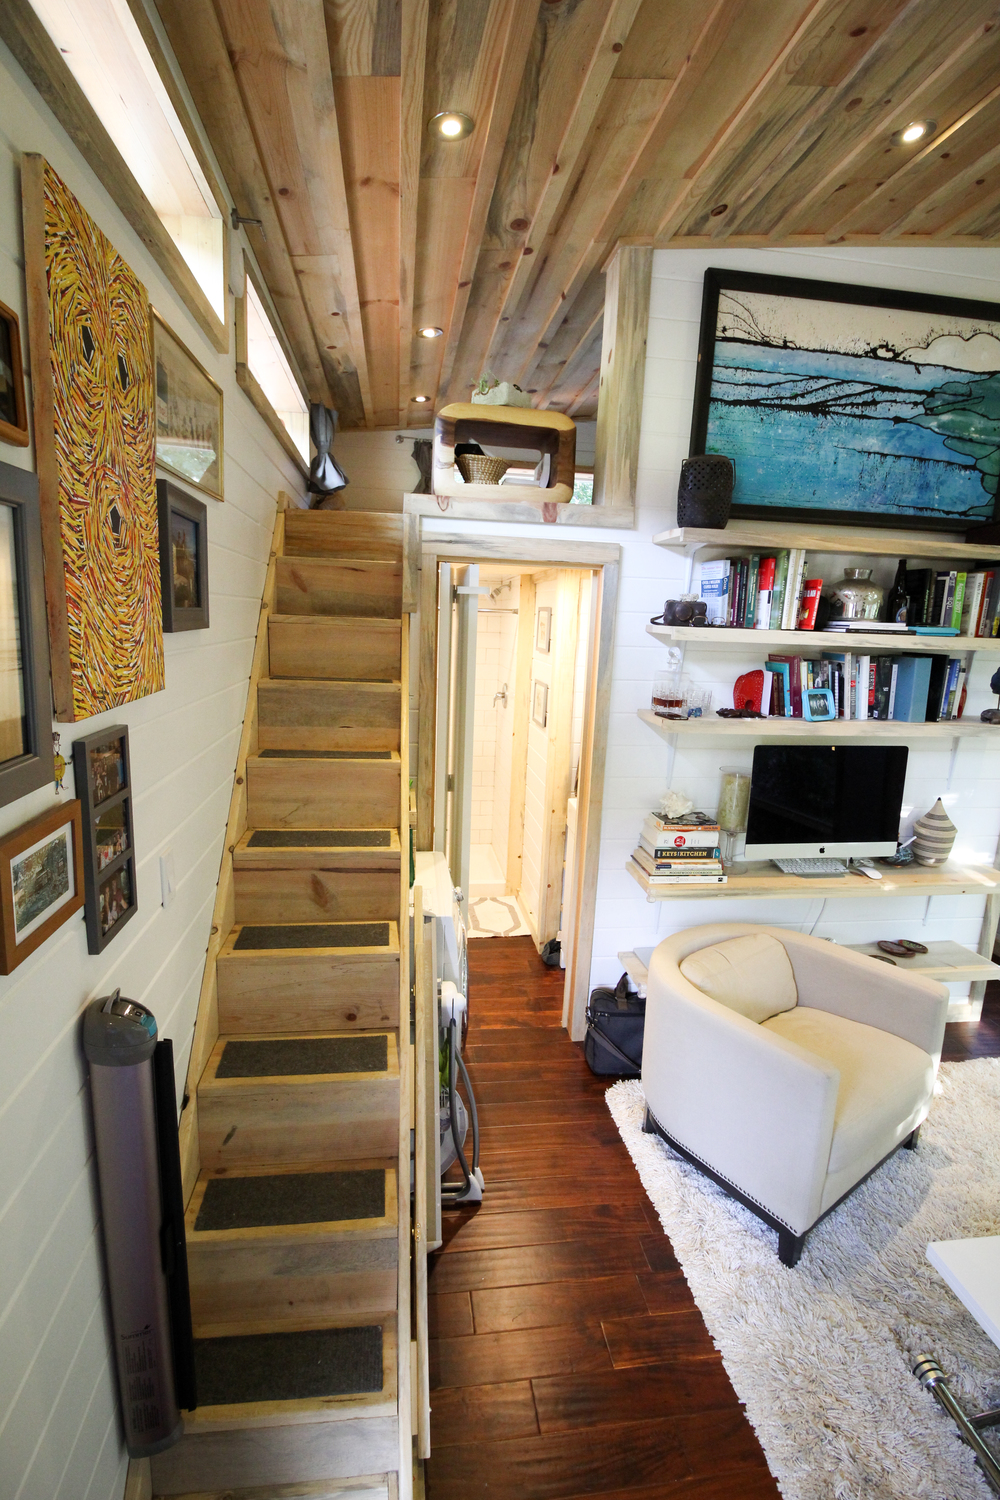 Pleasing Urban Cabin Tiny House Swoon Largest Home Design Picture Inspirations Pitcheantrous